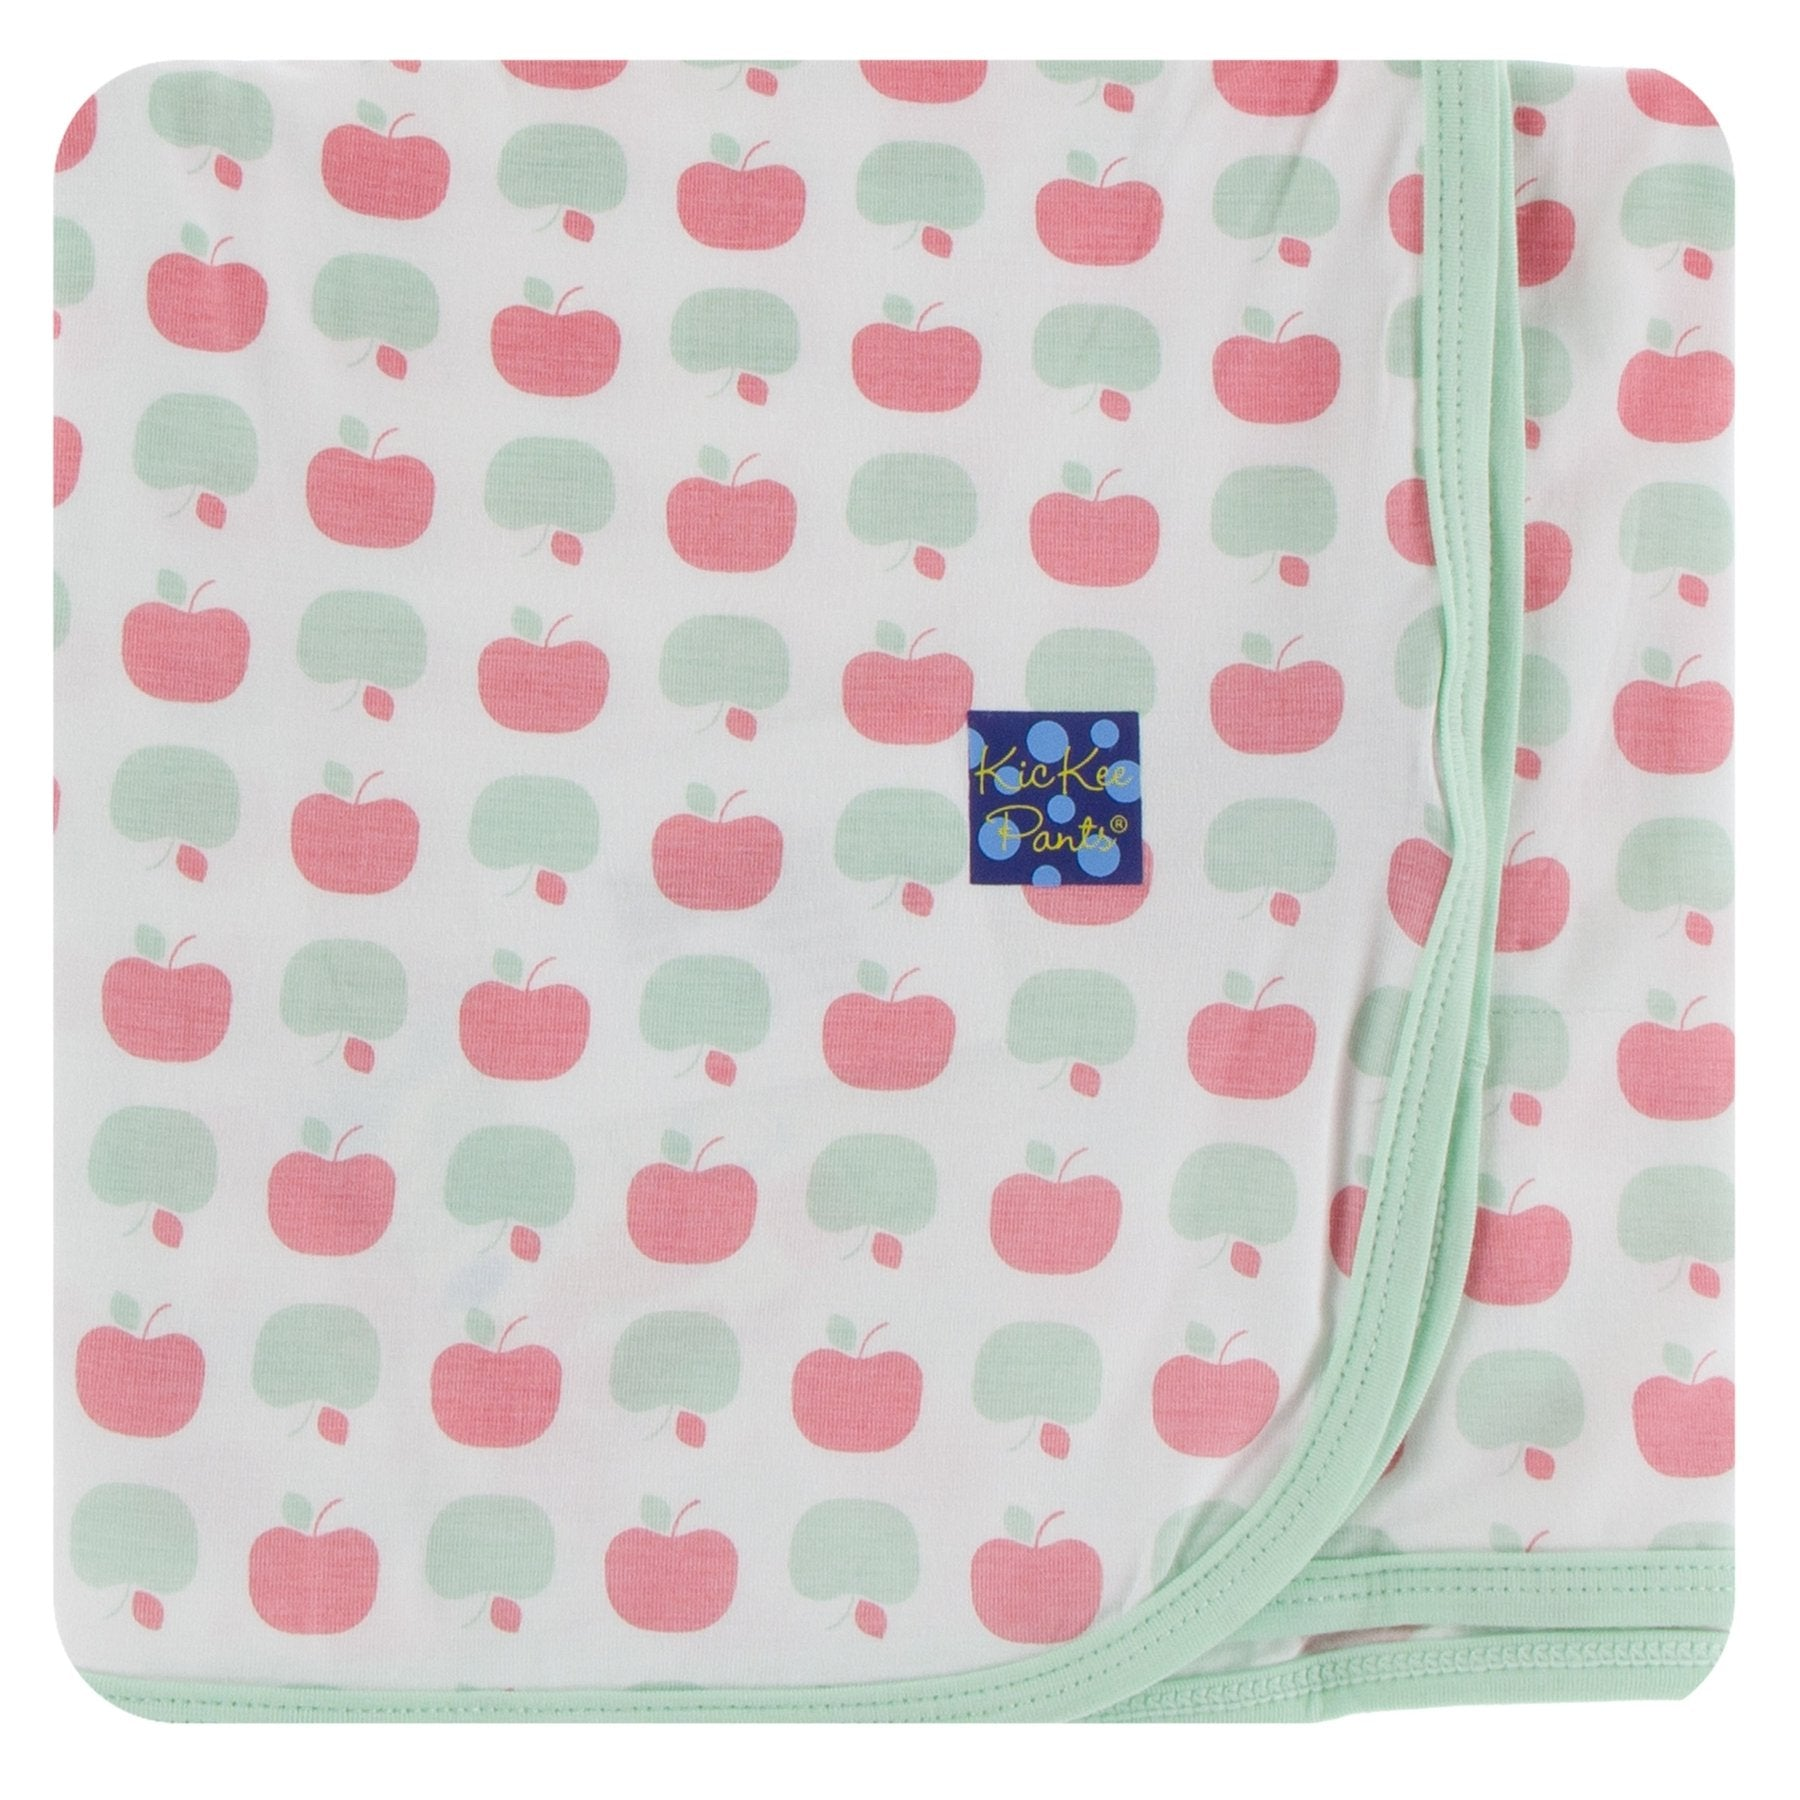 KICKEE PANTS PRINT SWADDLING BLANKET - NATURAL APPLES